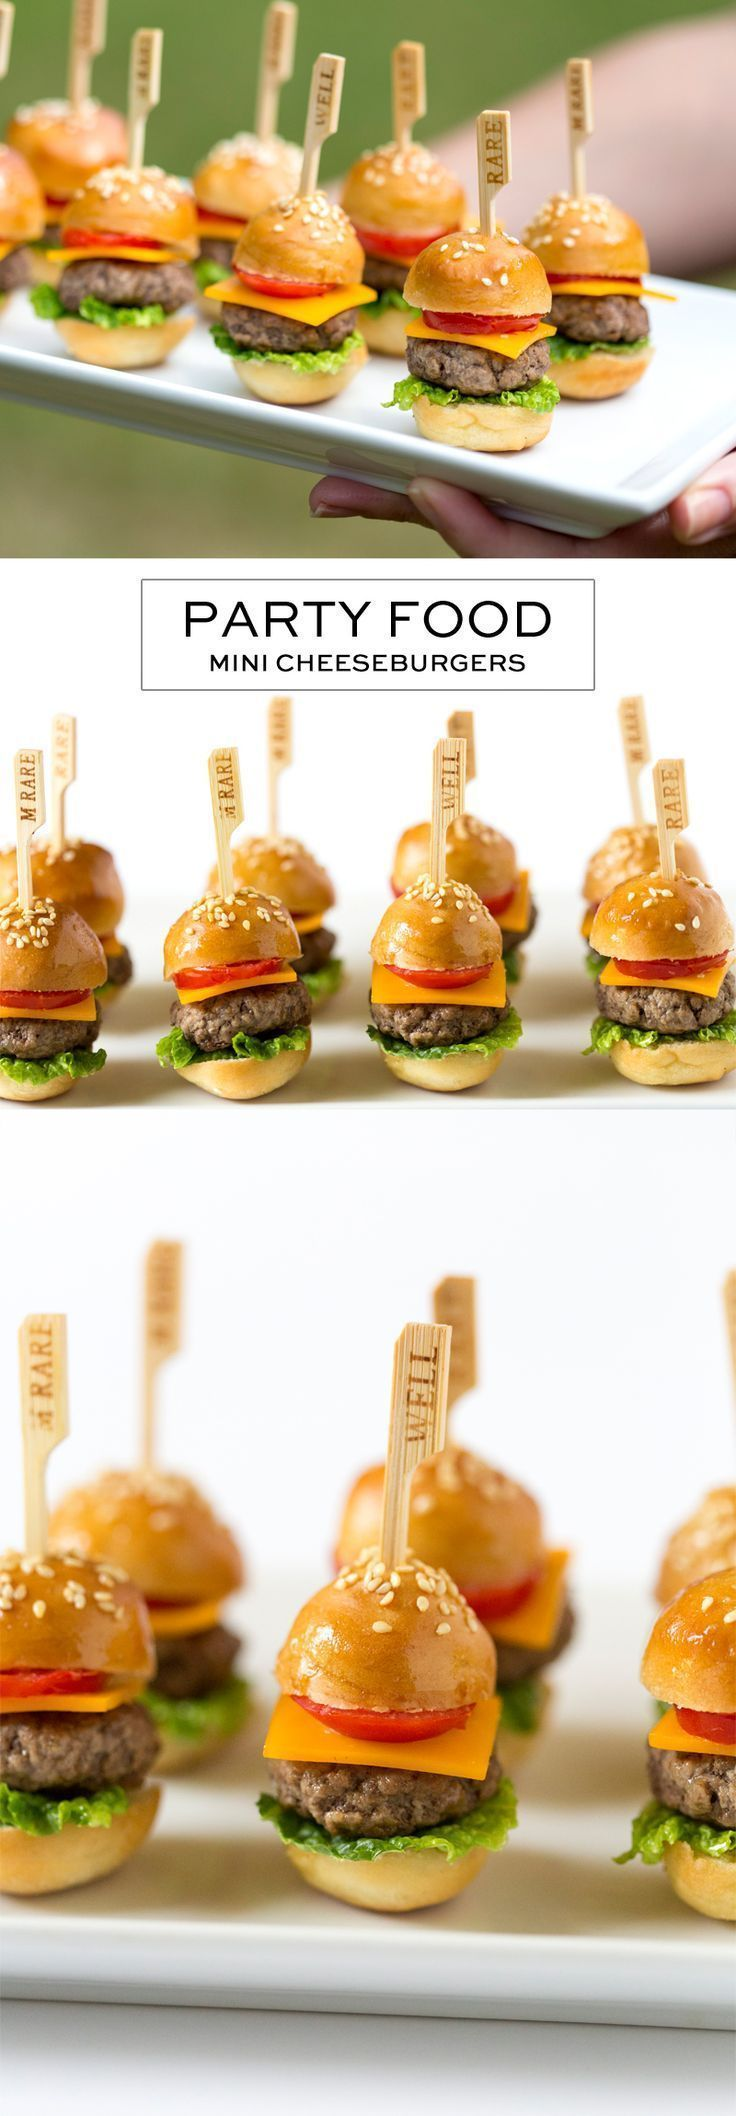 Perfect Party Food: How to Make Mini Cheeseburgers | https://lomejordelaweb.es/